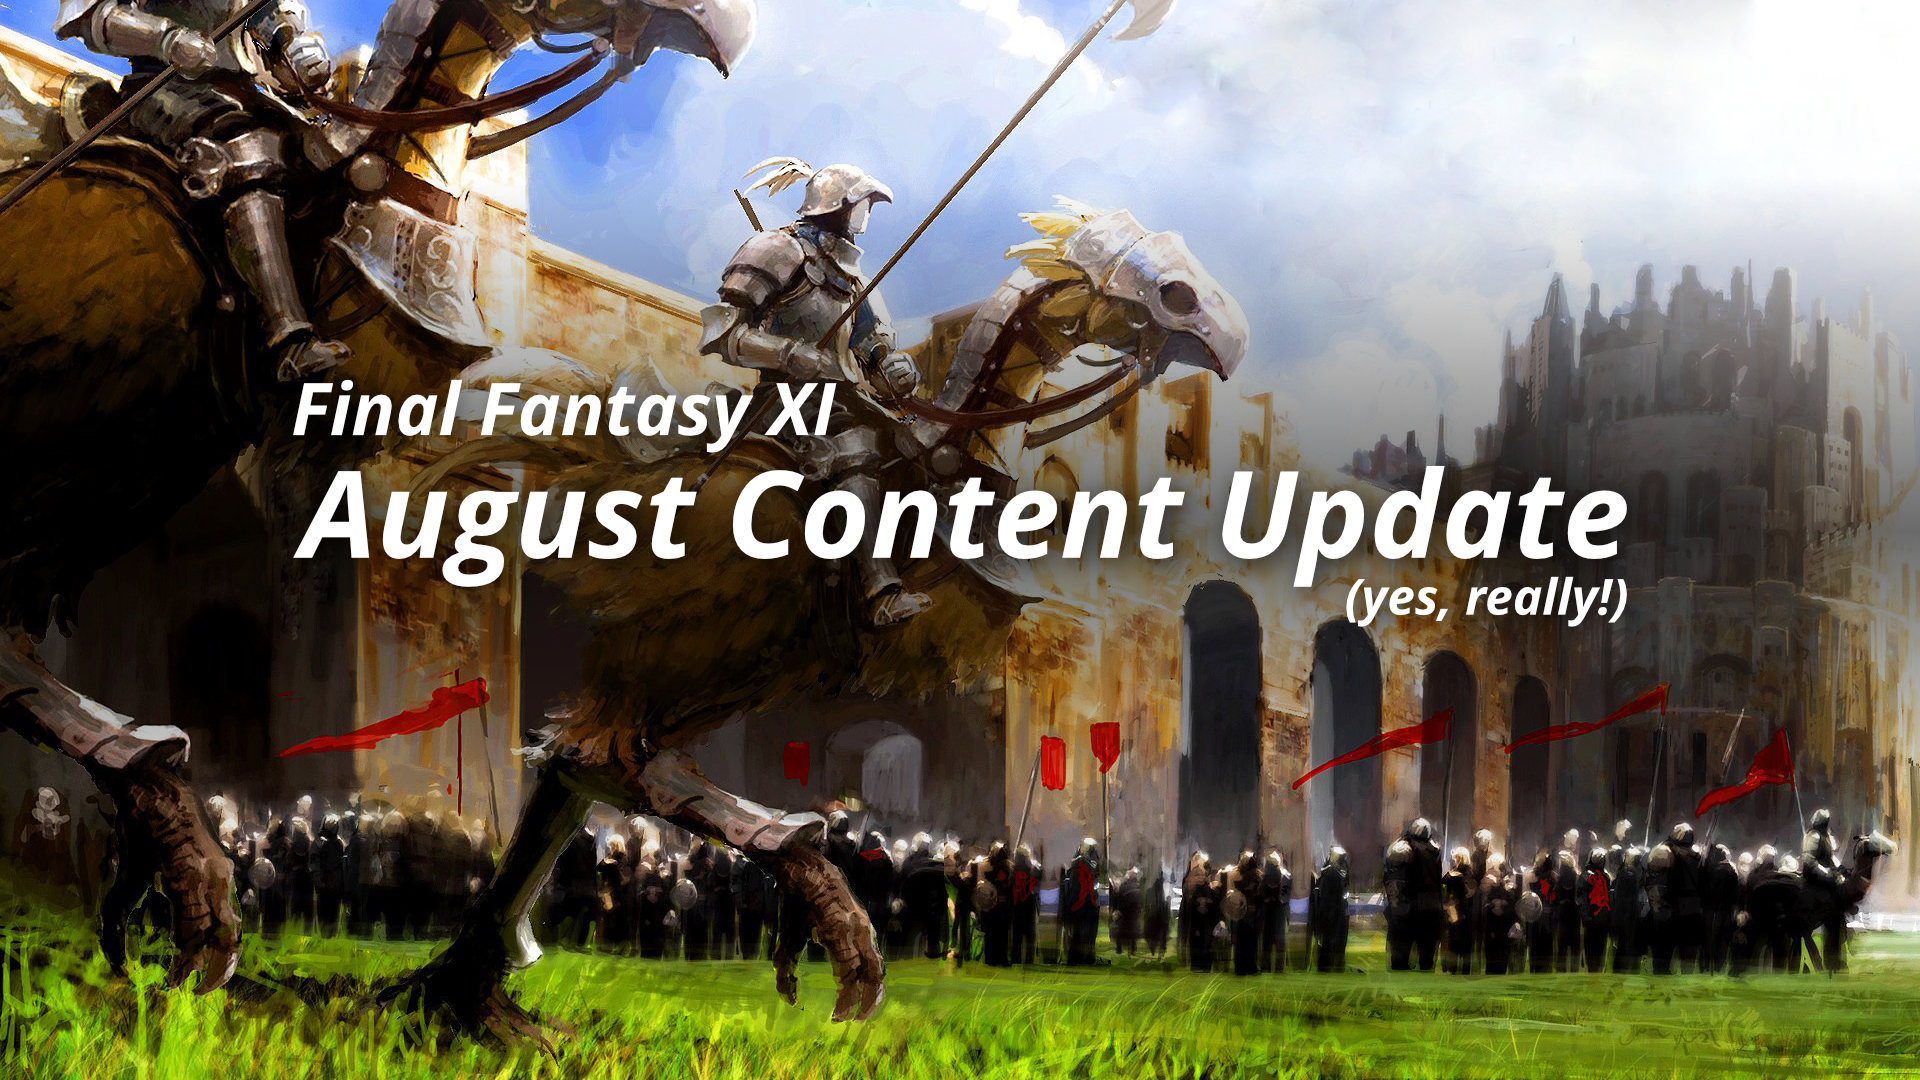 Final Fantasy XI August Content Update Featured Image